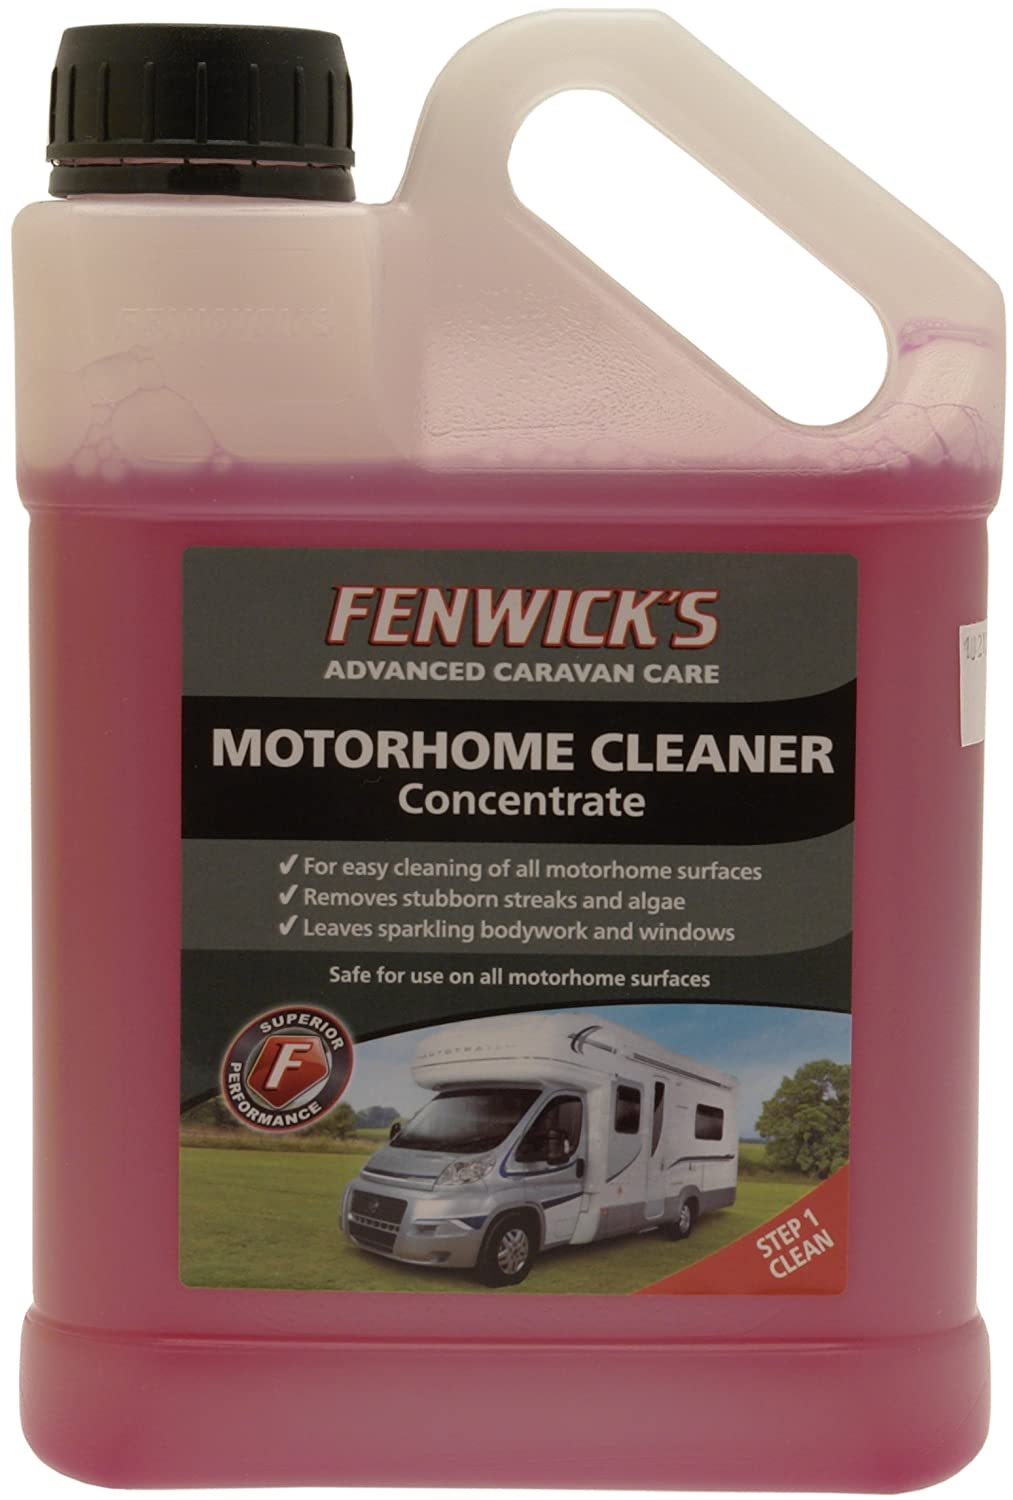 Fenwicks 304 Motorhome Cleaner, 1 Liter